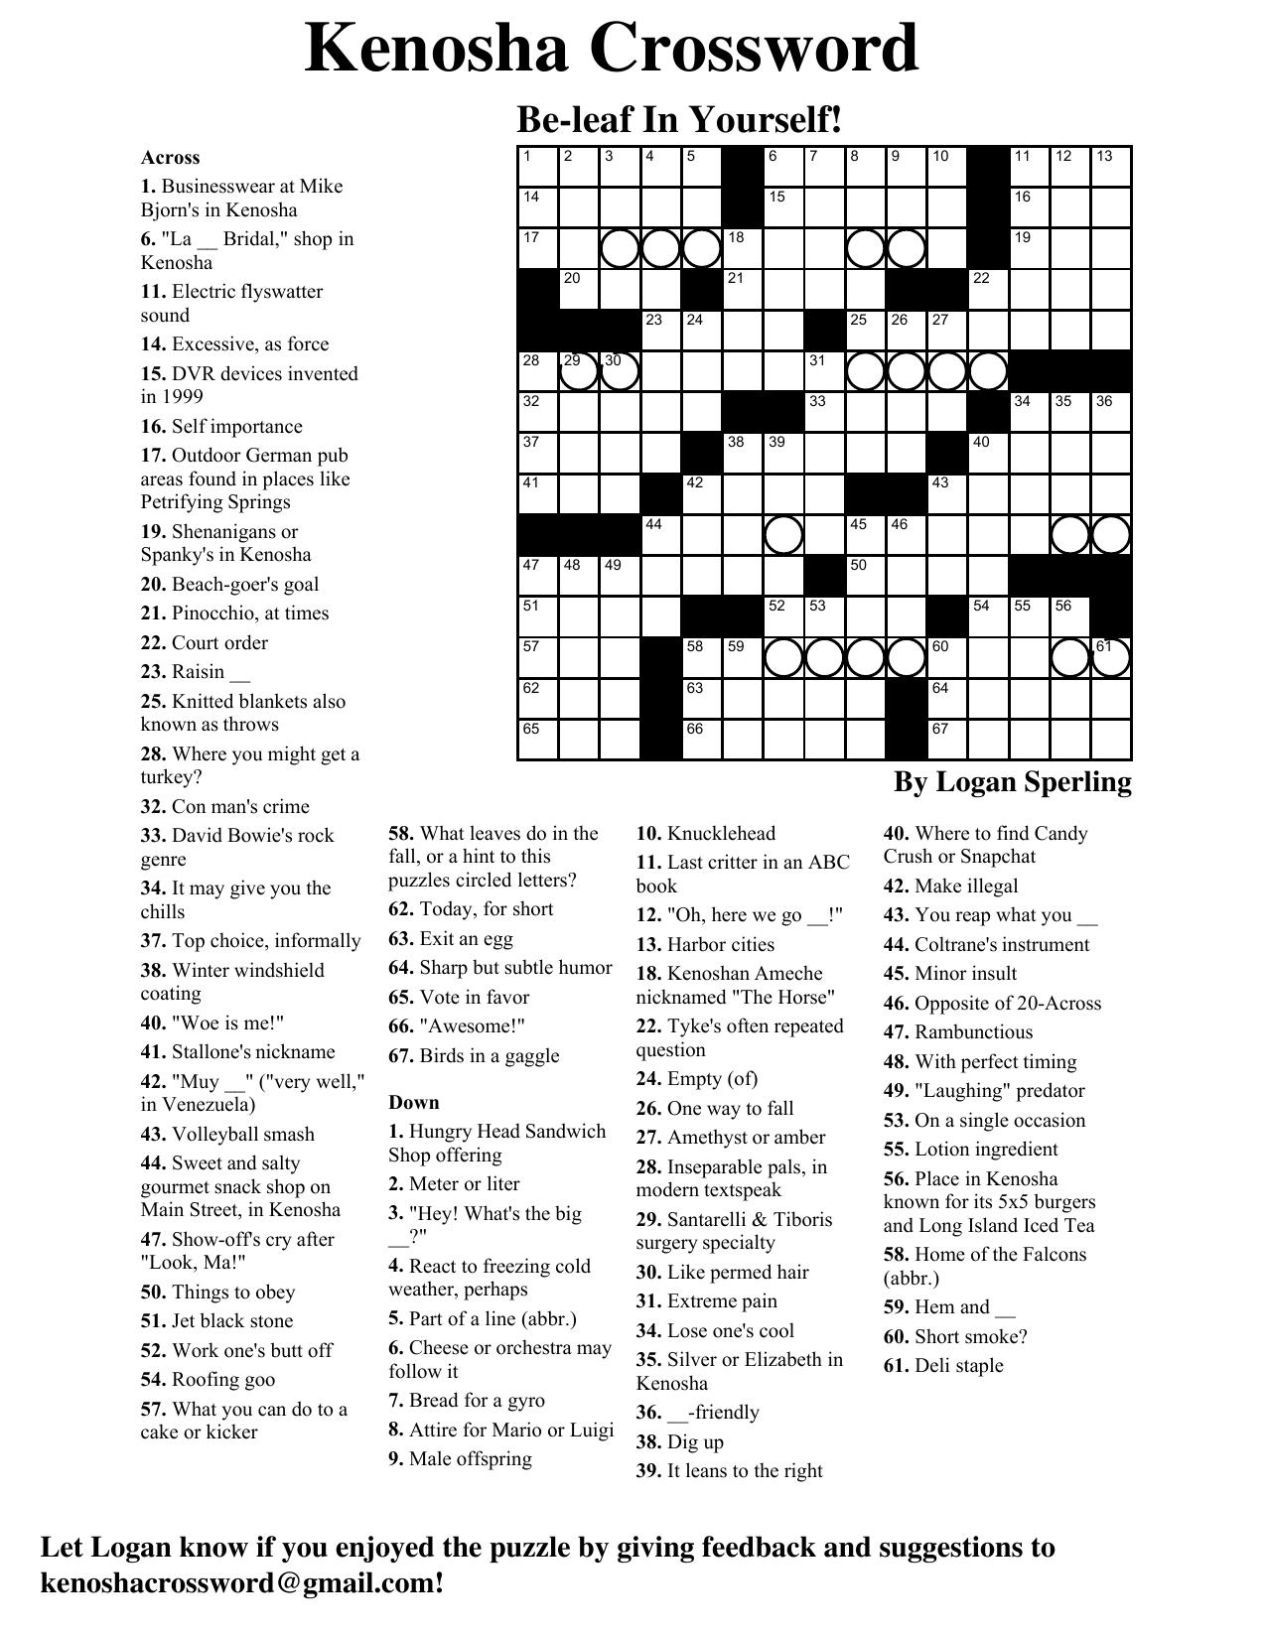 Bring on yourself crossword